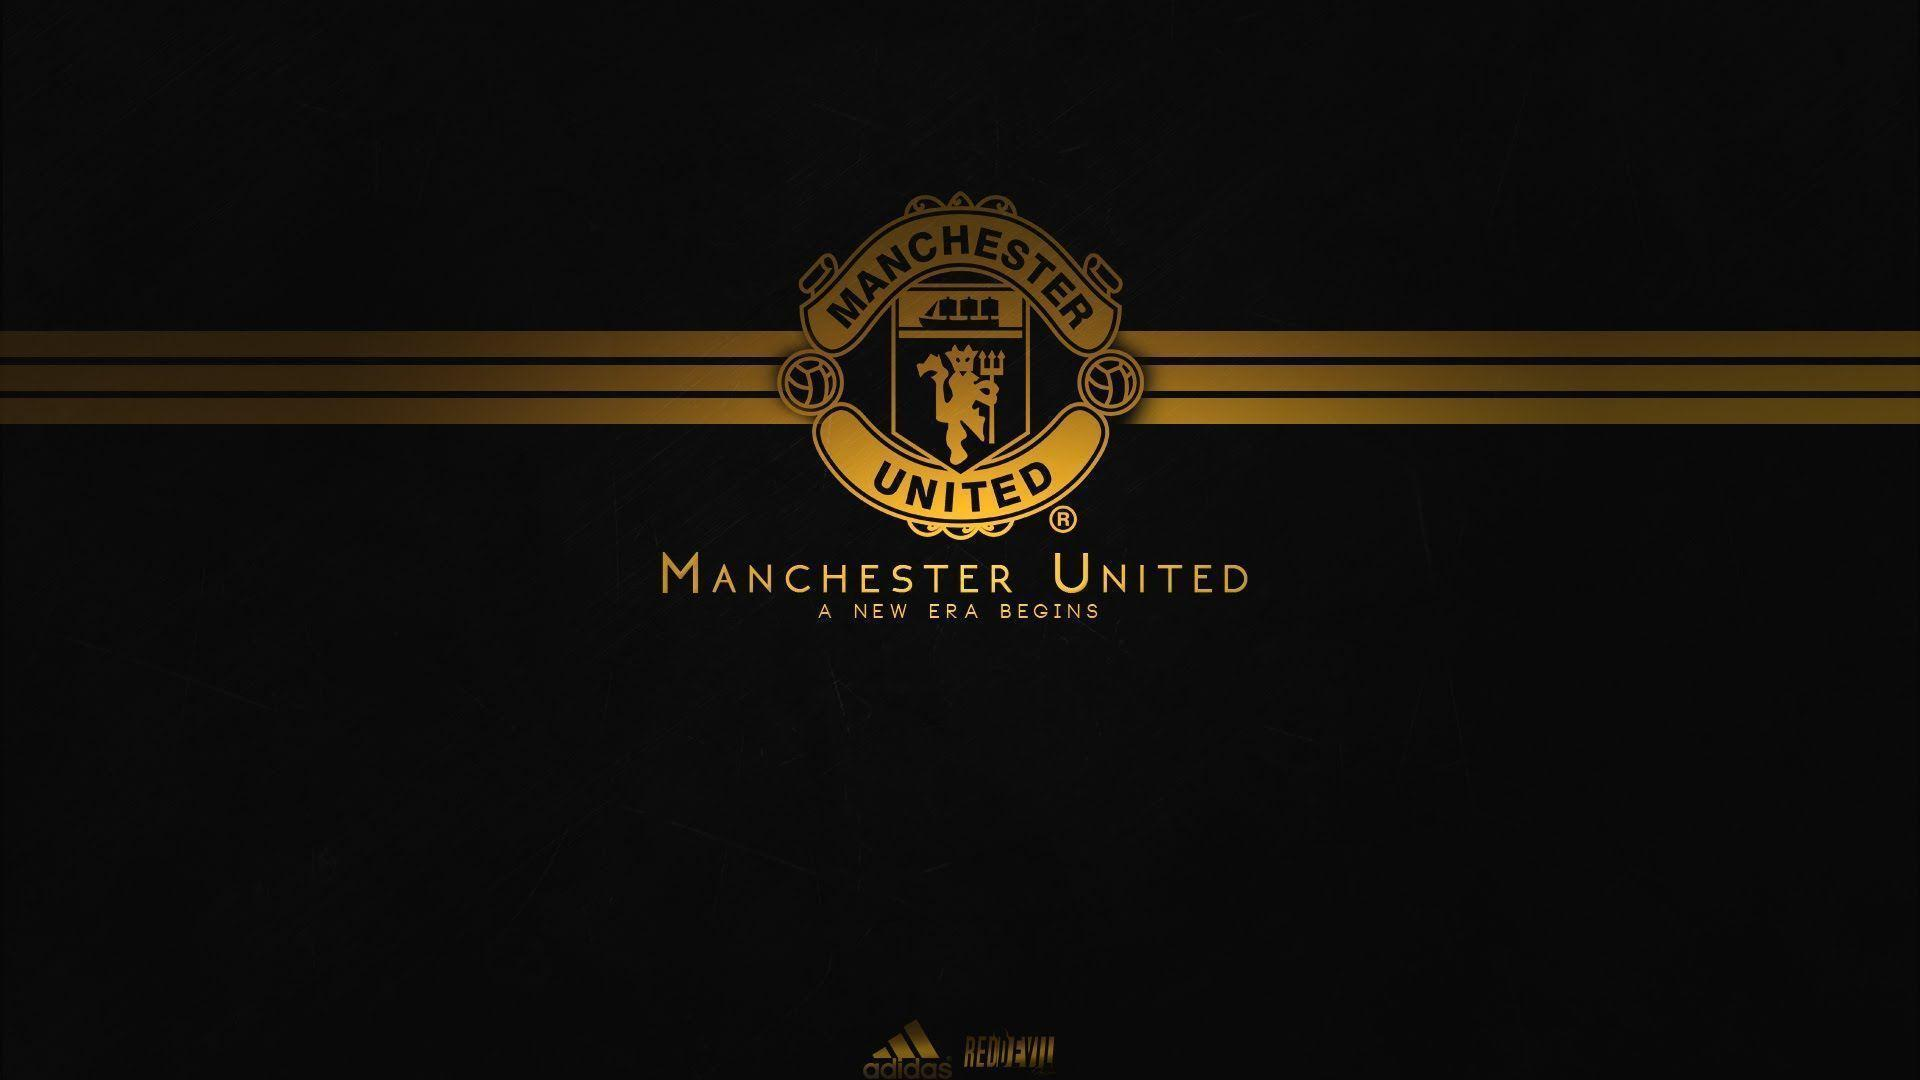 Man United Wallpapers 2017 1920x1080